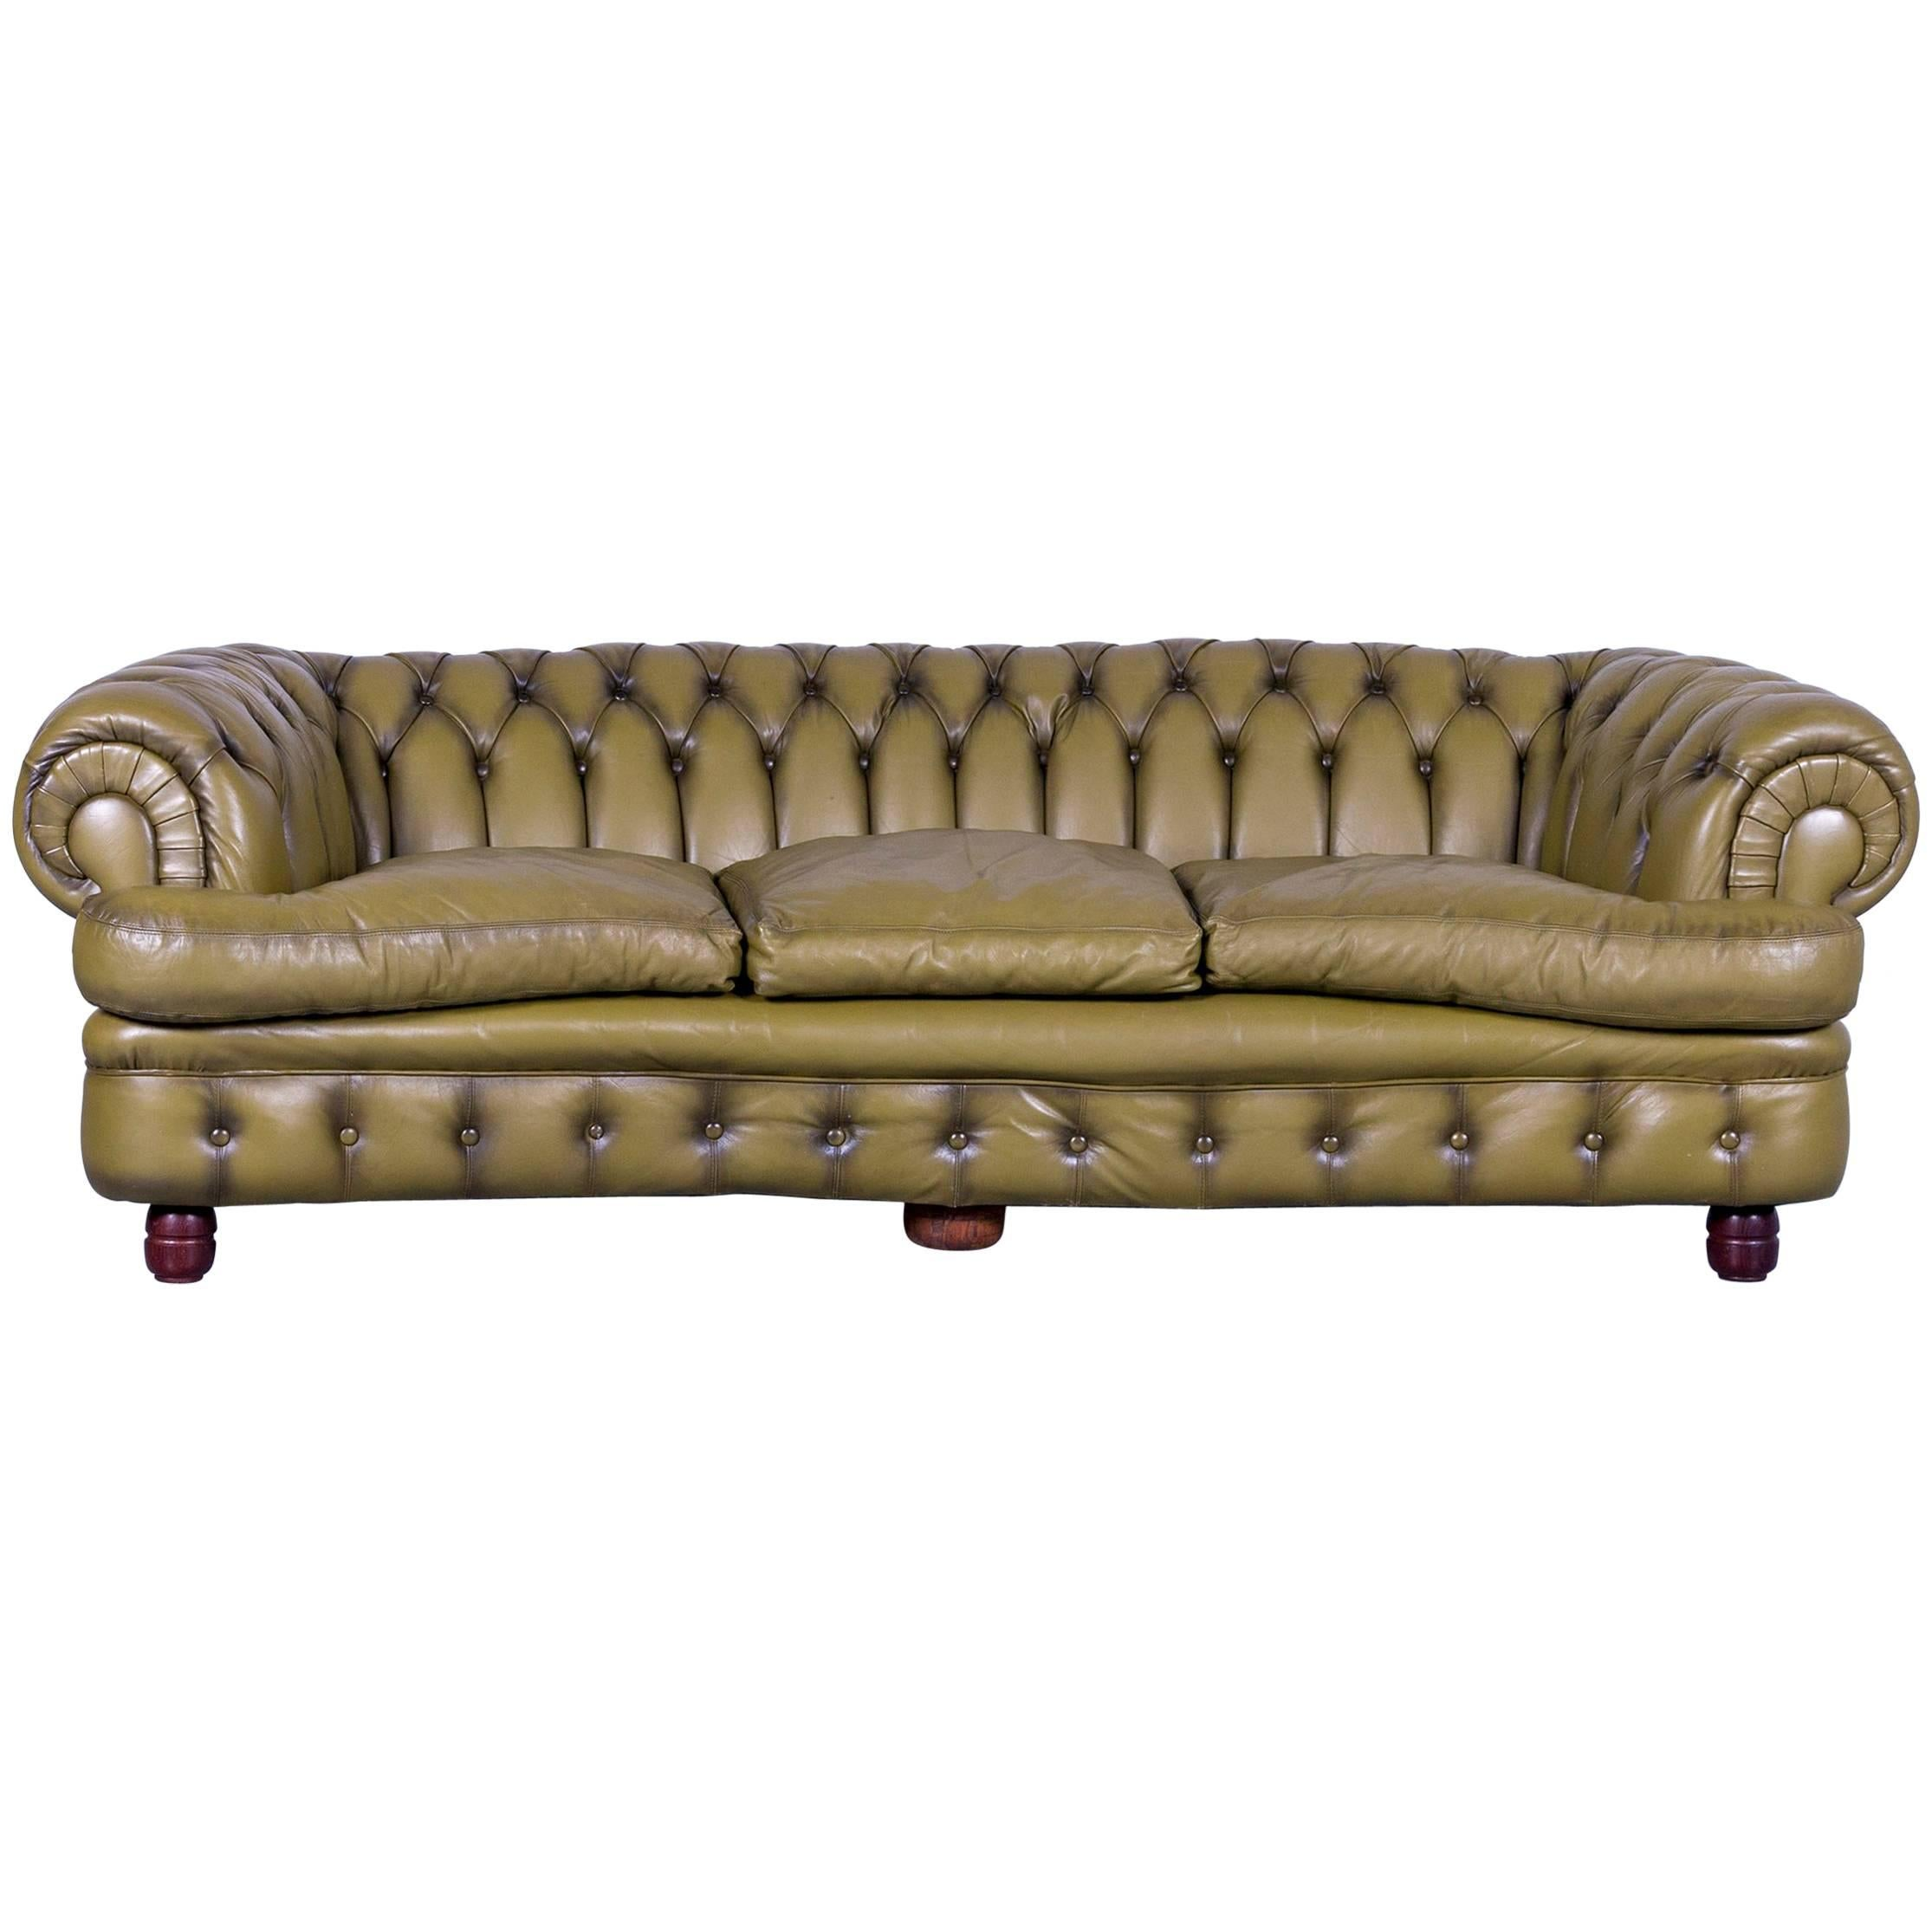 Chesterfield Sofa Green Three Seat Leather Couch Vintage Retro